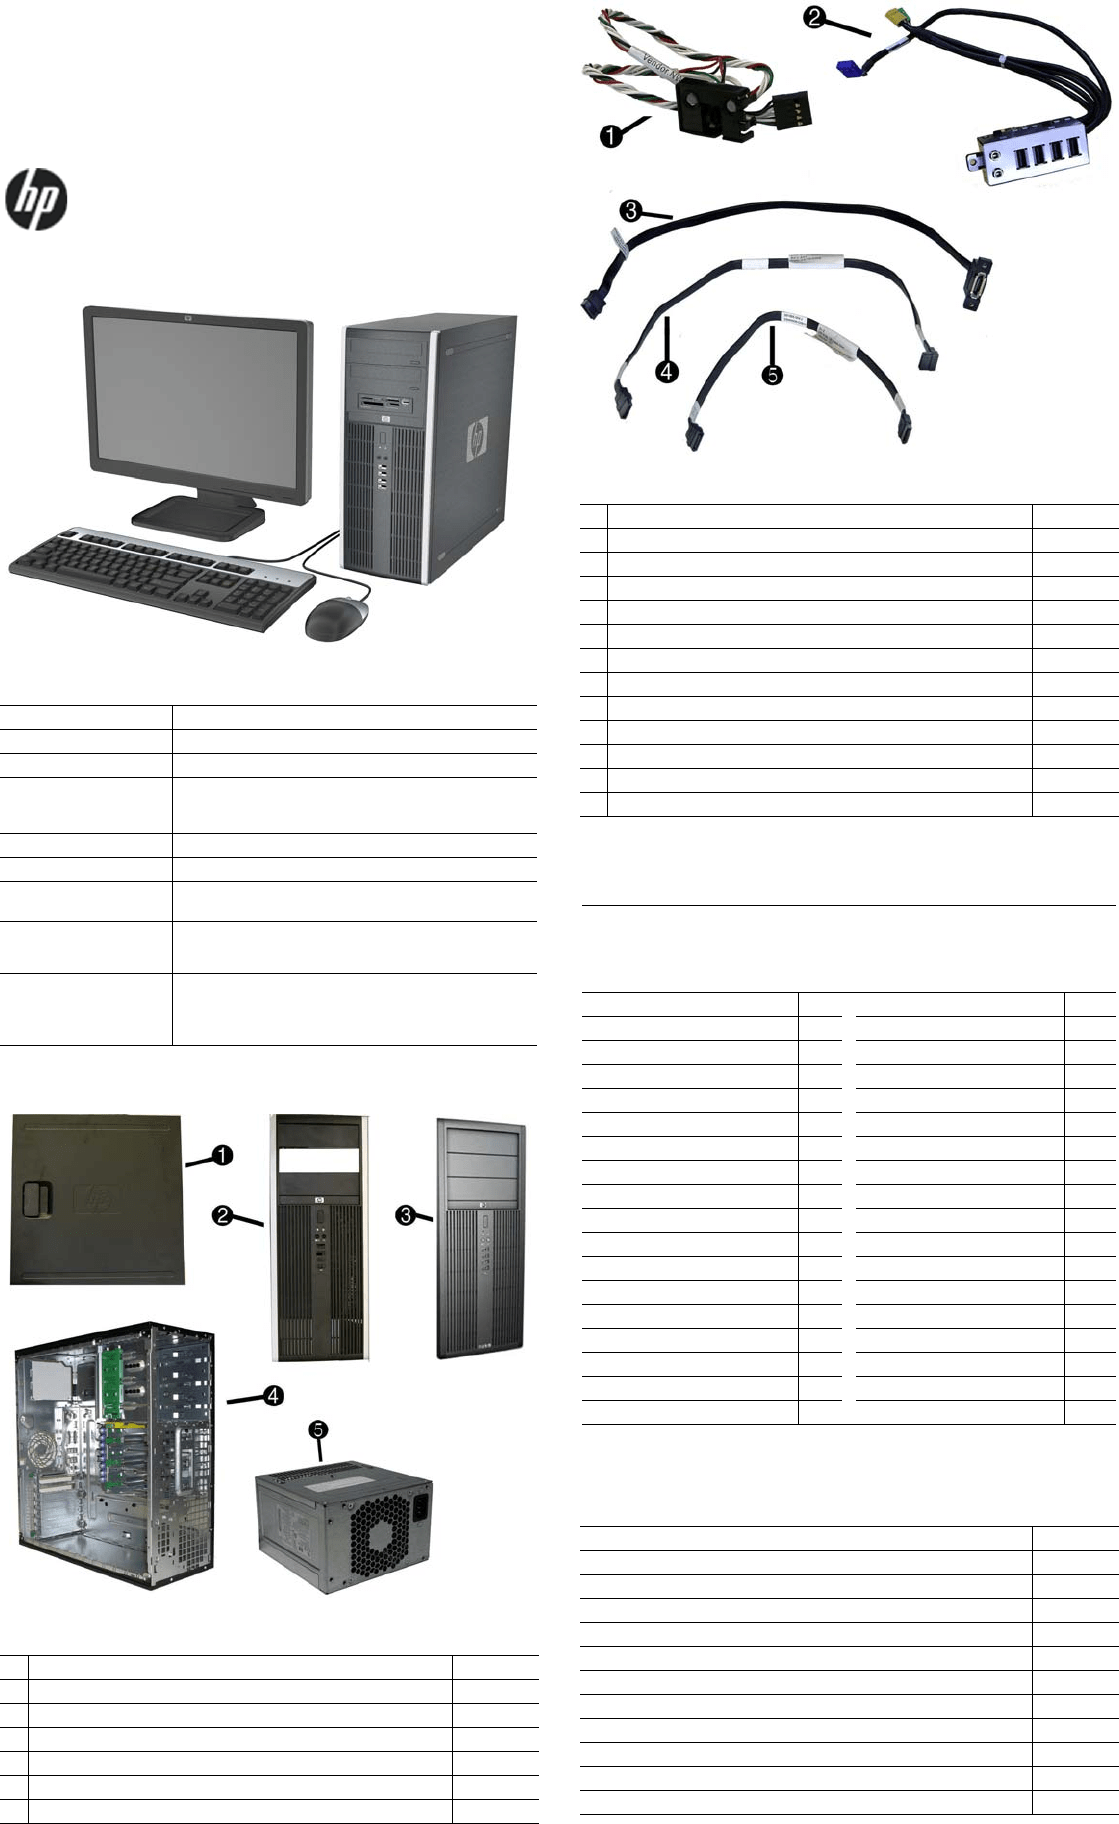 Hp Compaq 8100 Elite Convertible Minitower Pc Reference